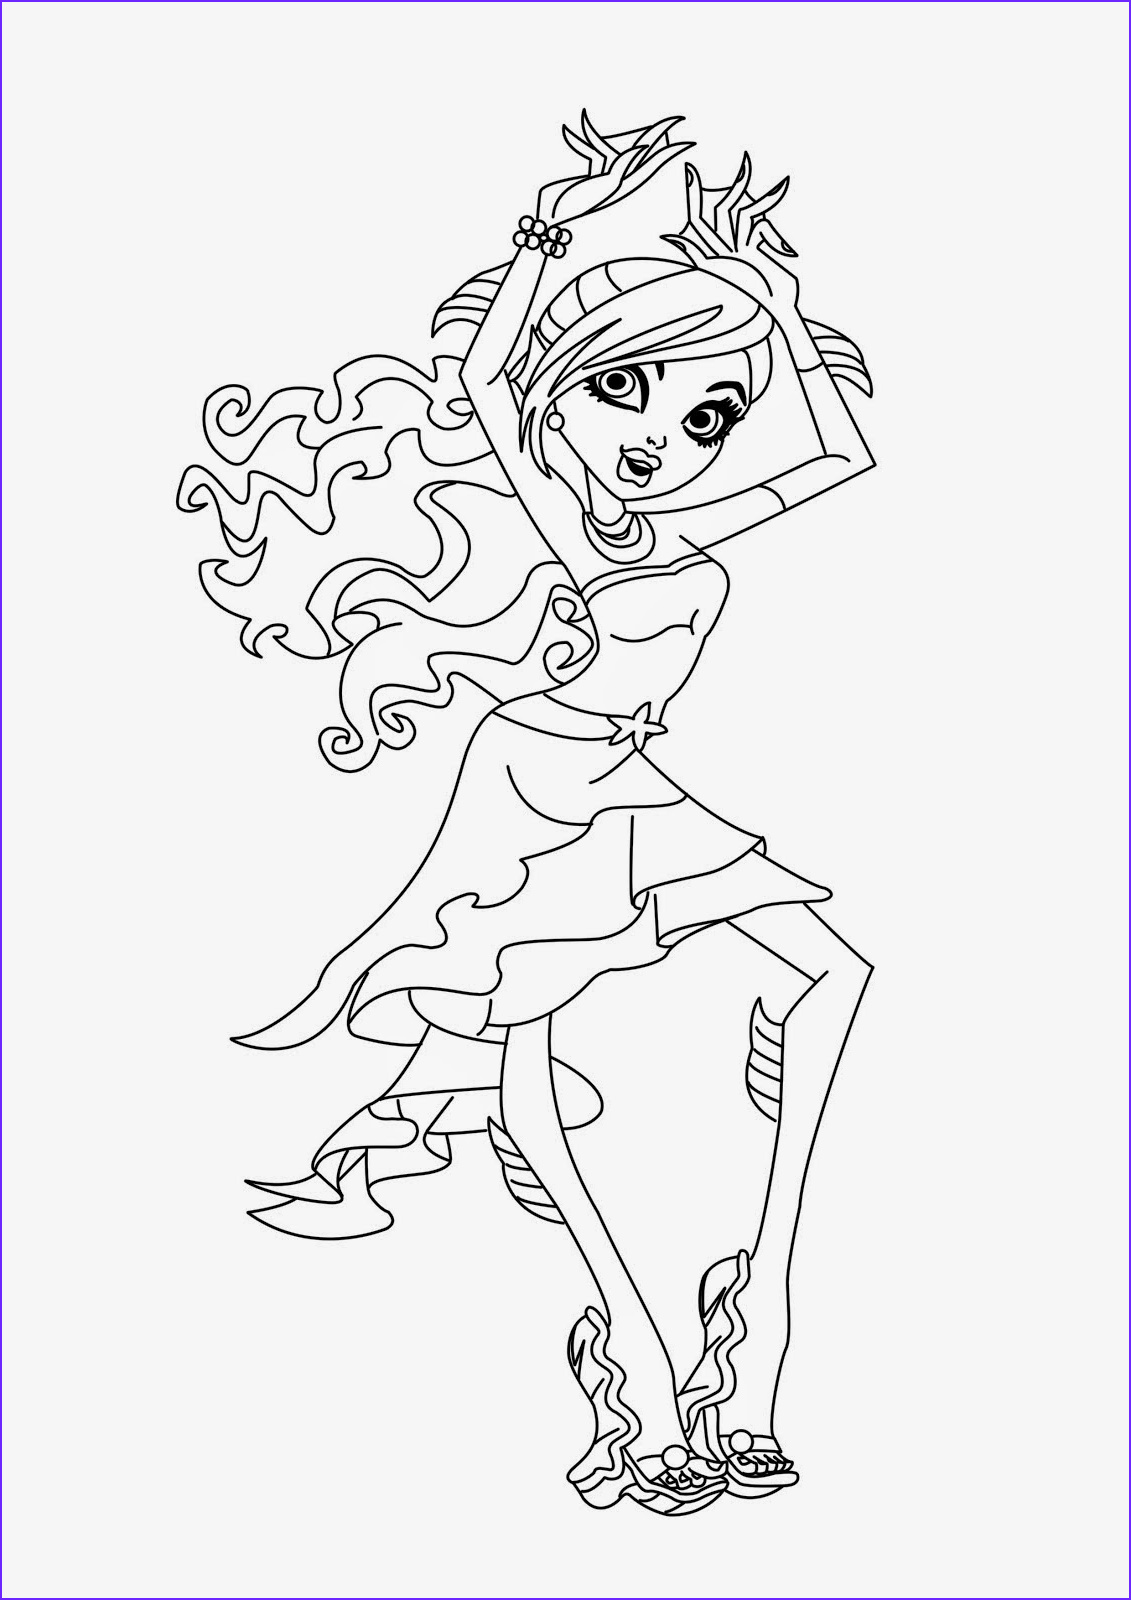 Monster High Coloring Pages Pdf Cool Photos Coloring Pages Monster High Coloring Pages Free And Printable